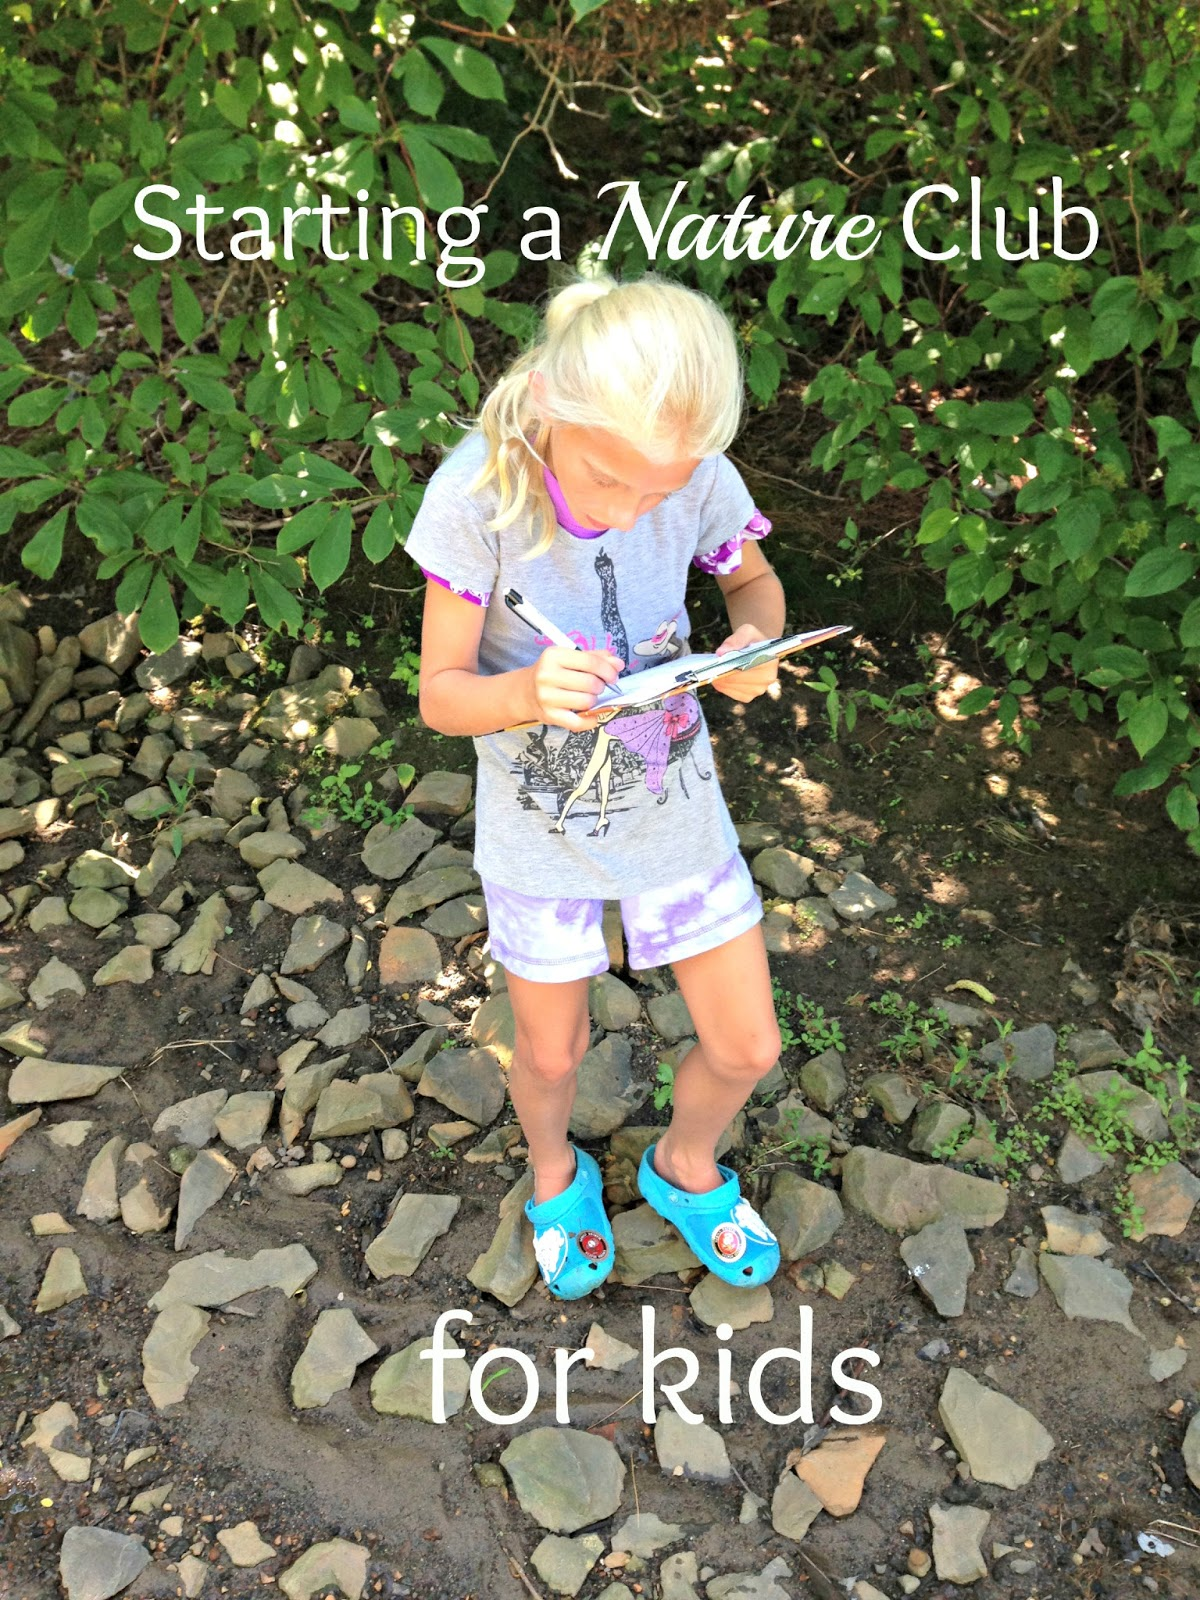 Some Of The Best Things In Life Are Mistakes Nature Club For Kids With Free Printables